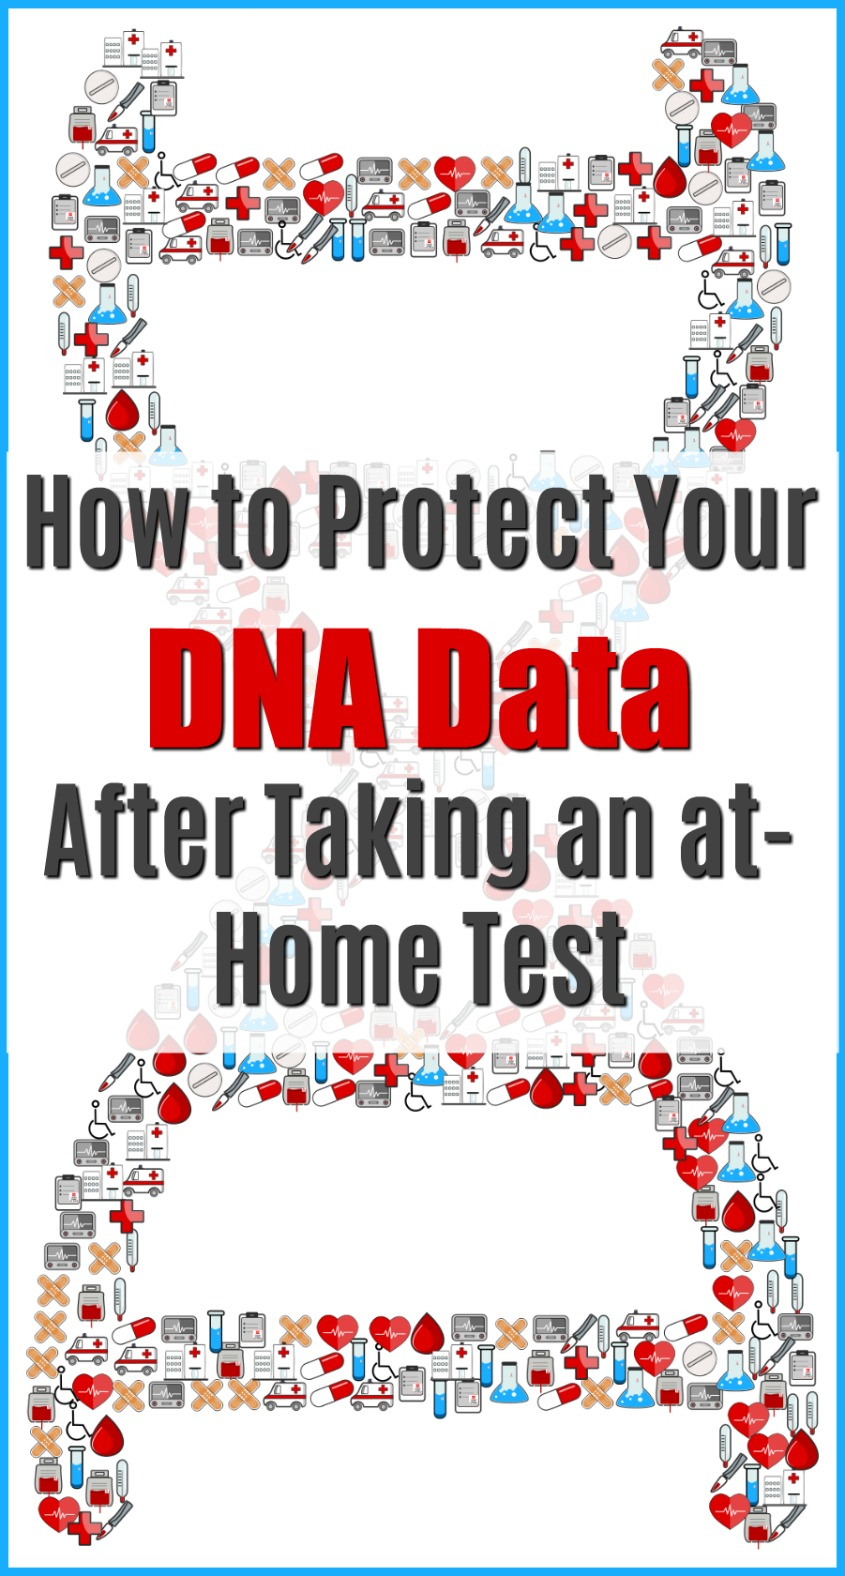 How to Protect Your DNA Data Before & After Taking an at-Home Test #health #dnatest